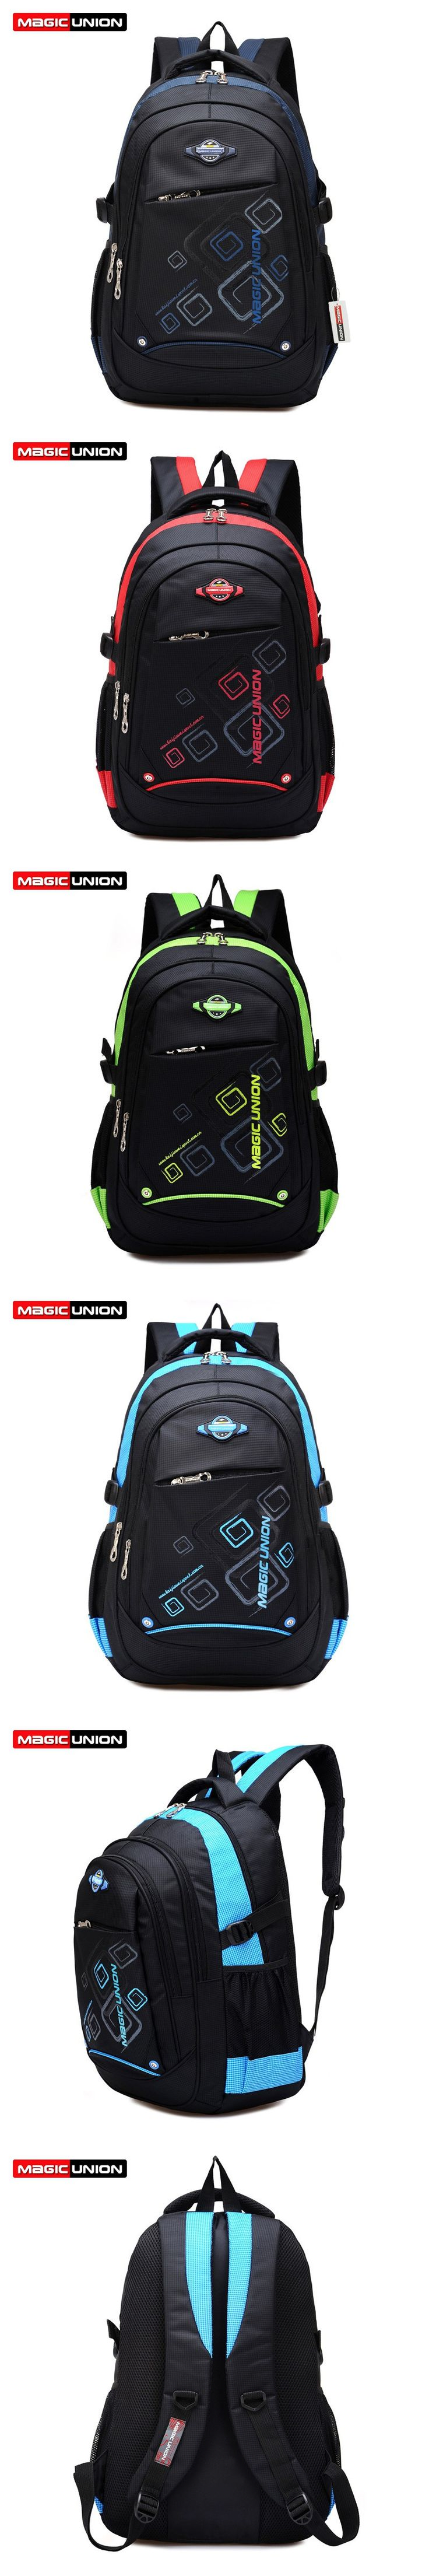 53 best casual backpacks images on pinterest backpack bags